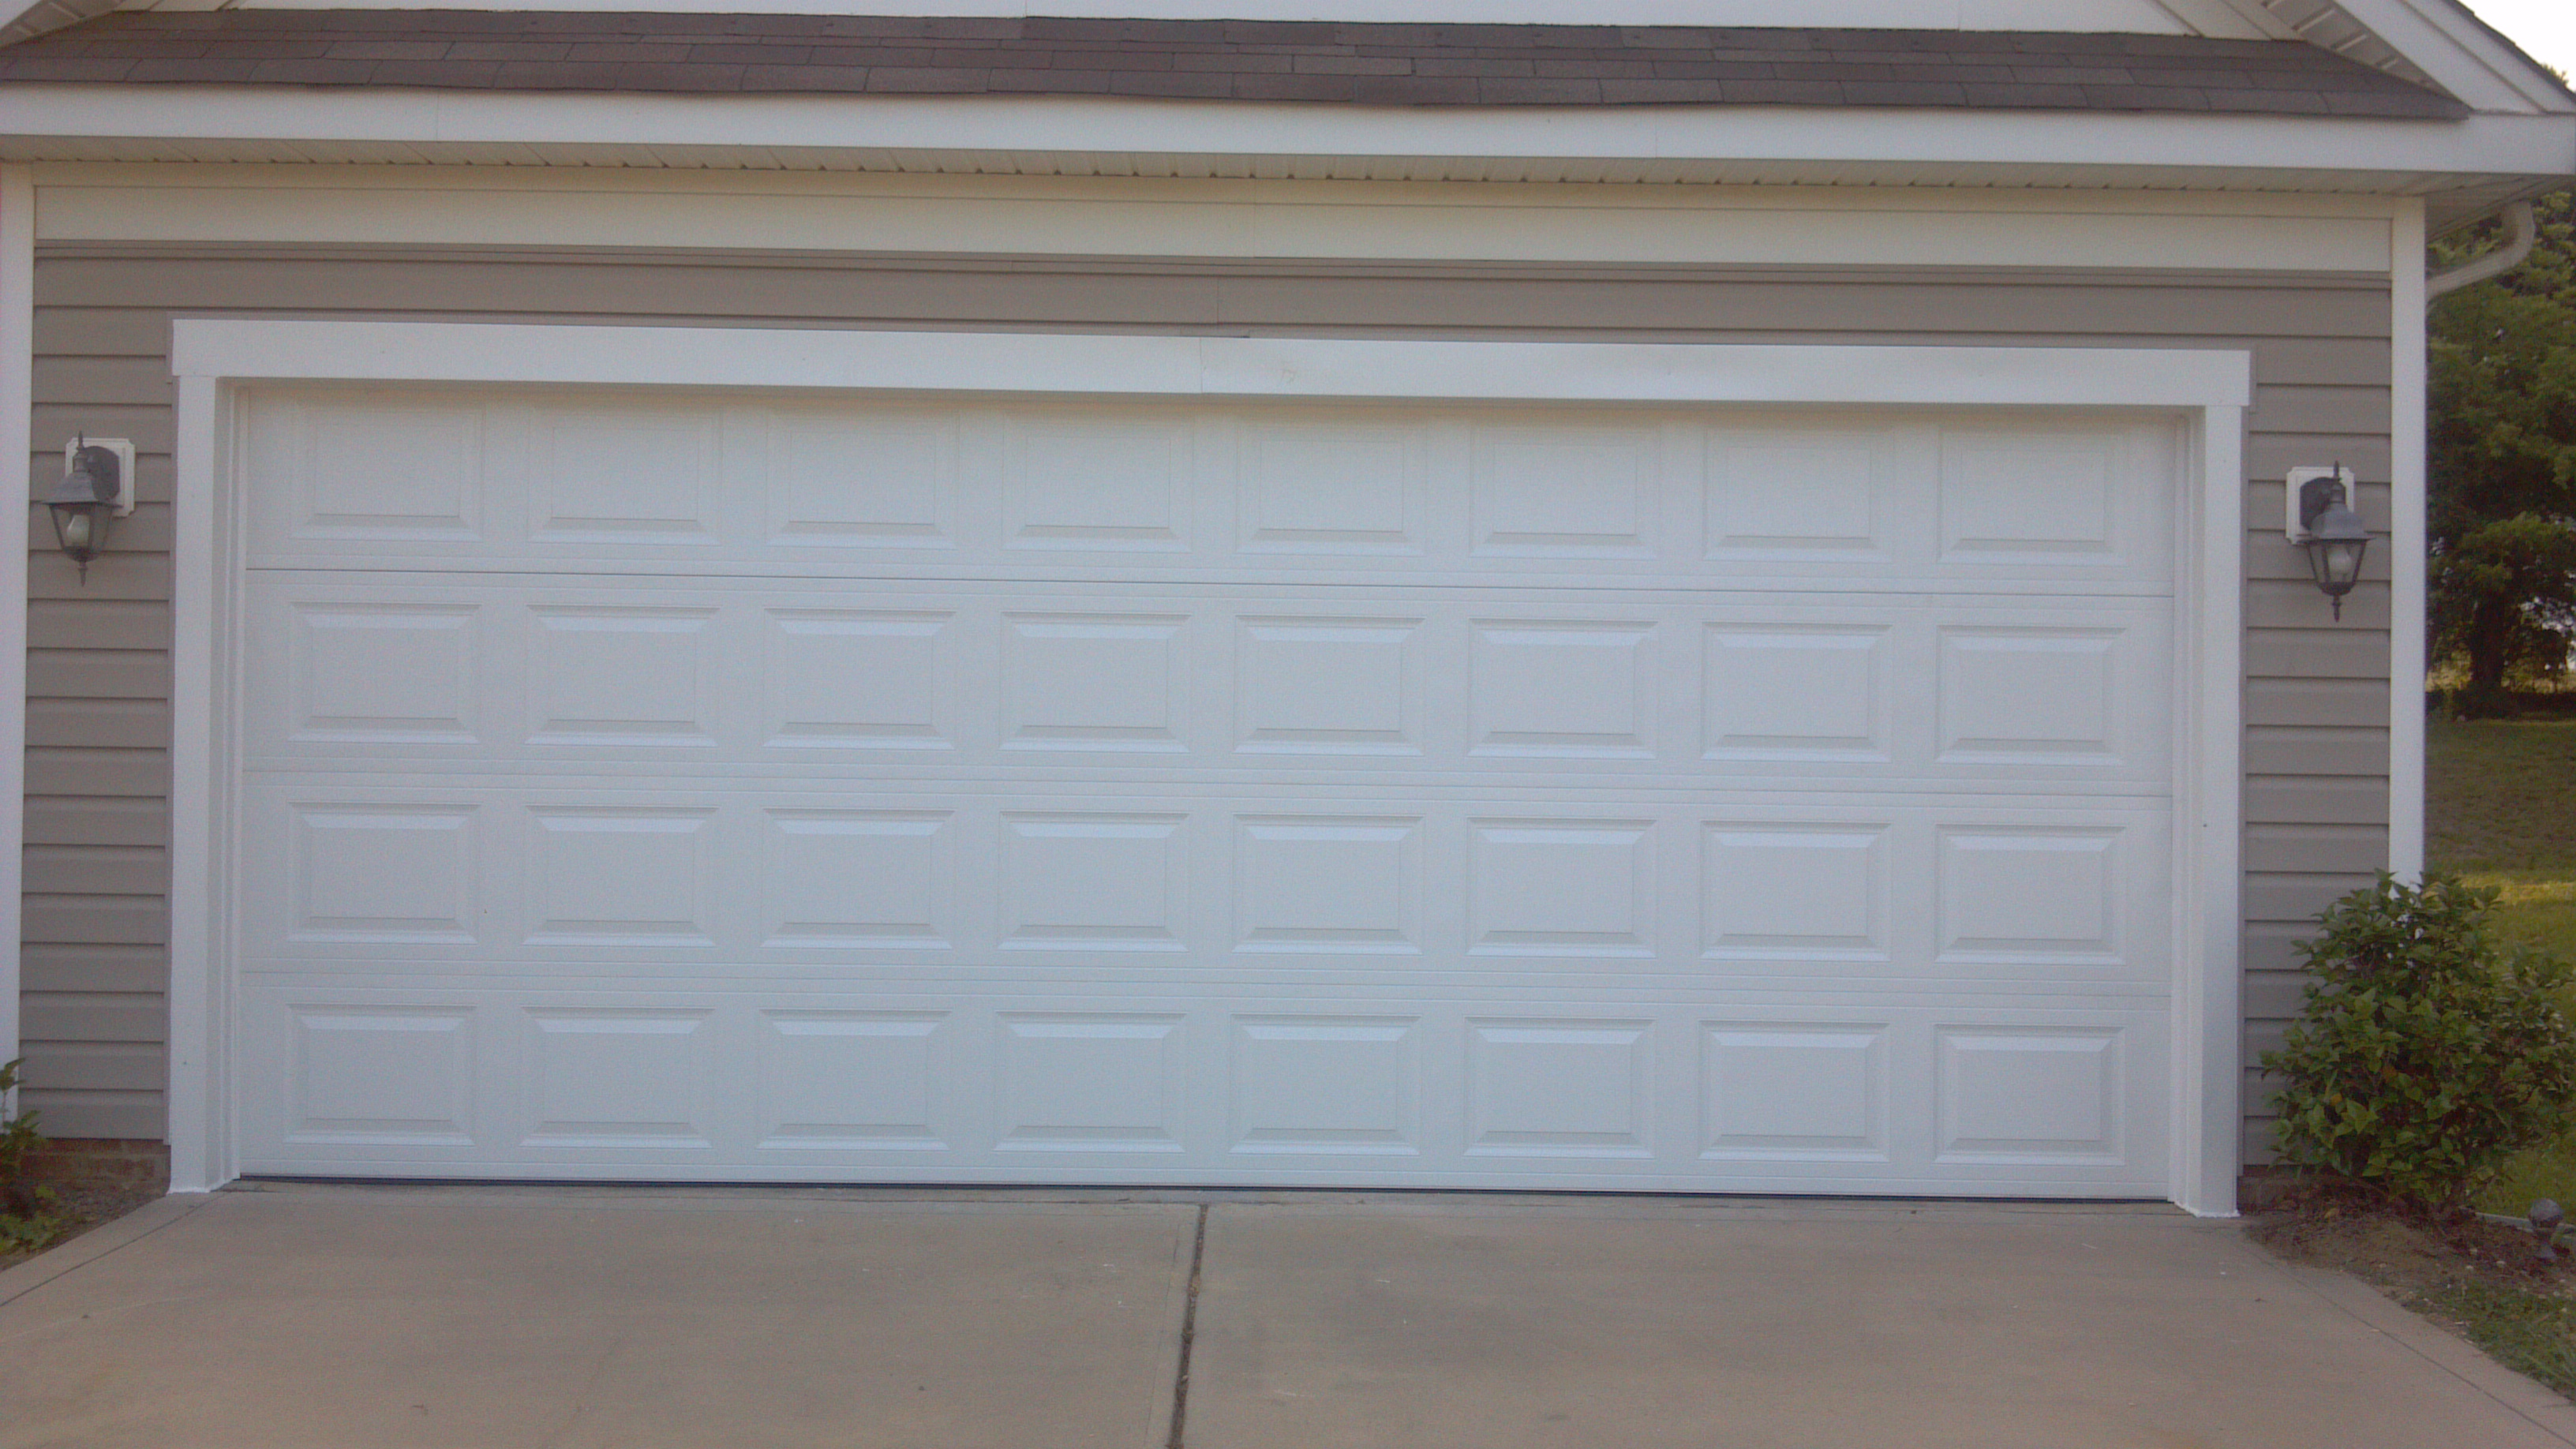 Garage doors double large and beautiful photos photo to for Garage framing instructions